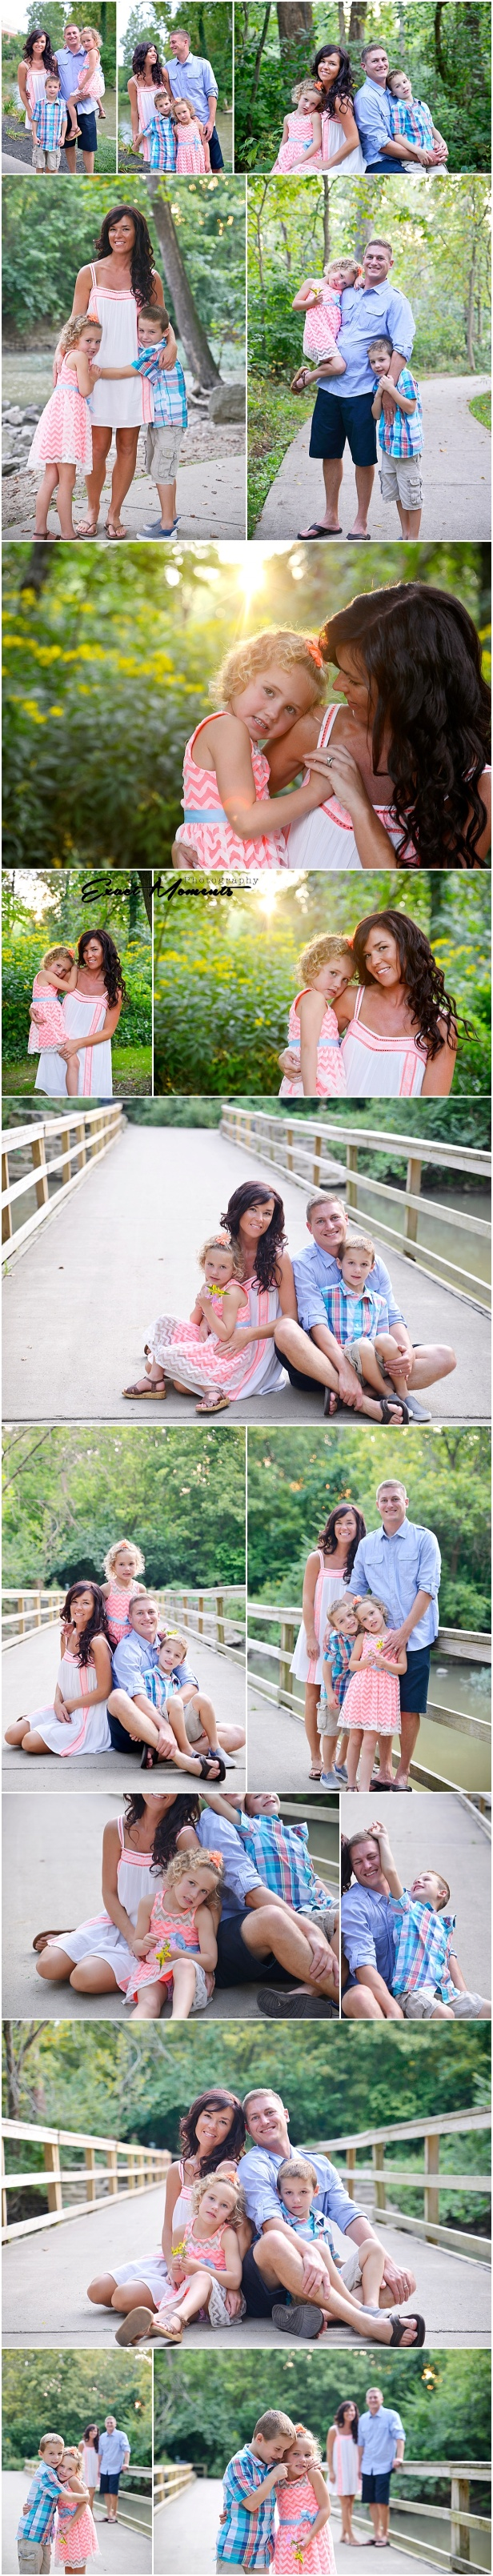 Gahanna Creekside Park Family photos